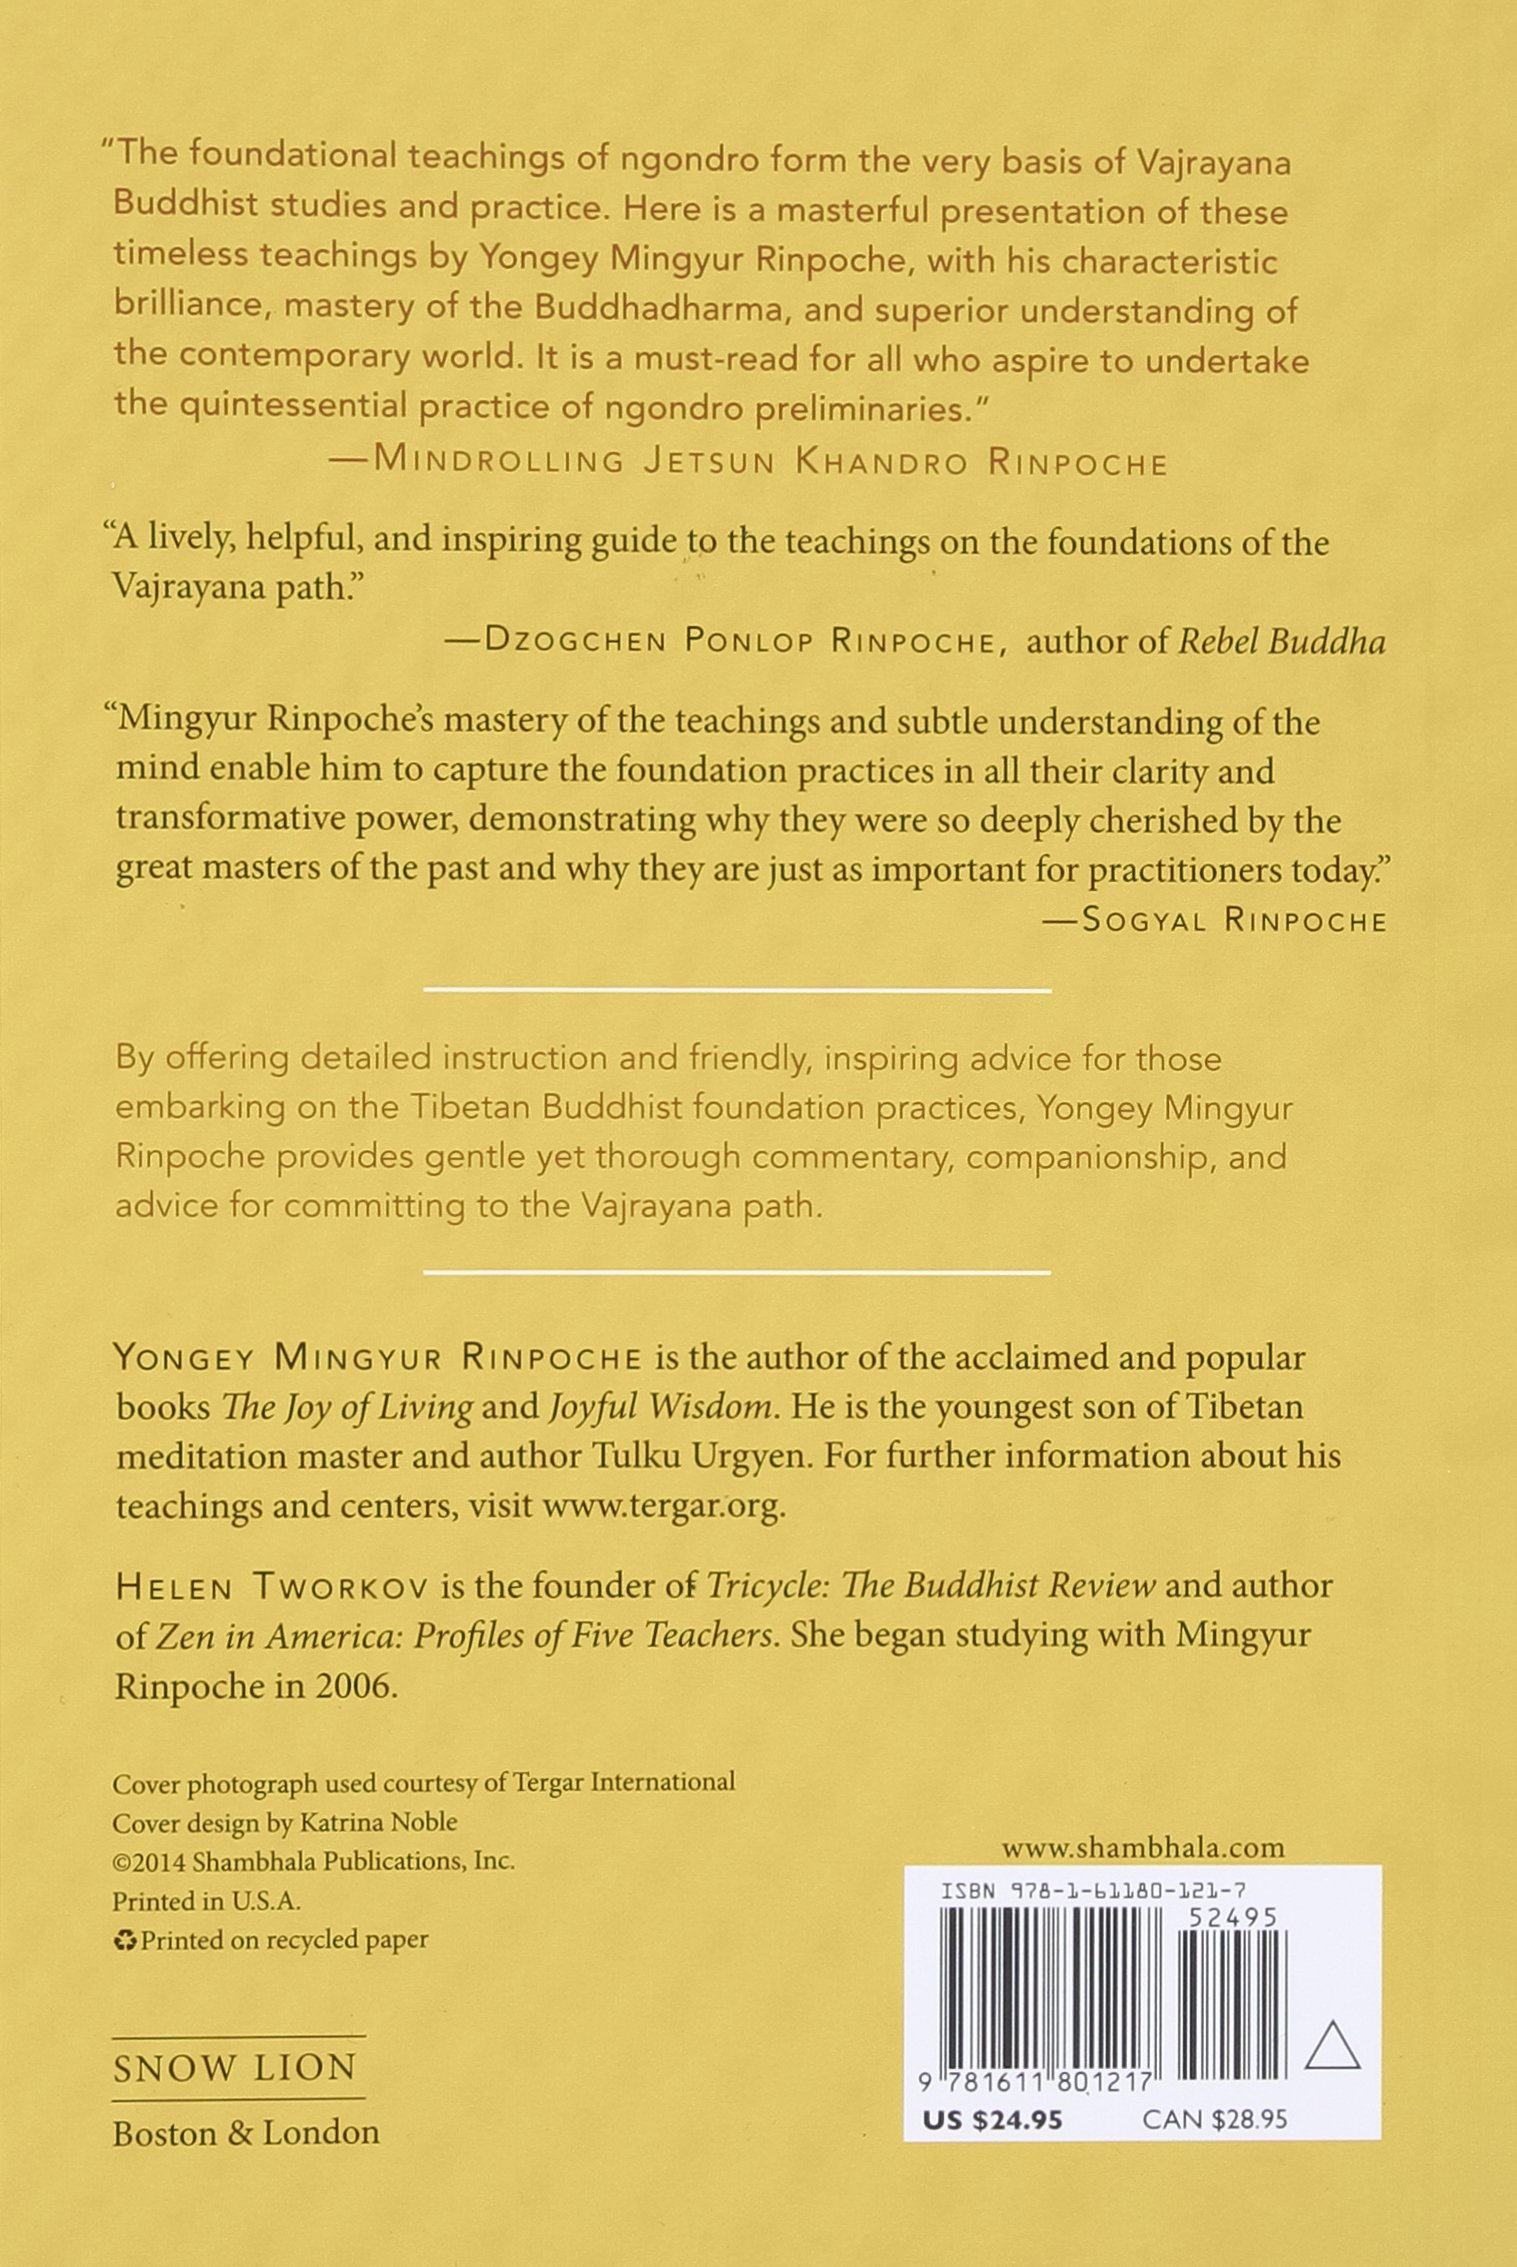 Amazon: Turning Confusion Into Clarity: A Guide To The Foundation  Practices Of Tibetan Buddhism (9781611801217): Yongey Mingyur, Helen  Tworkov,